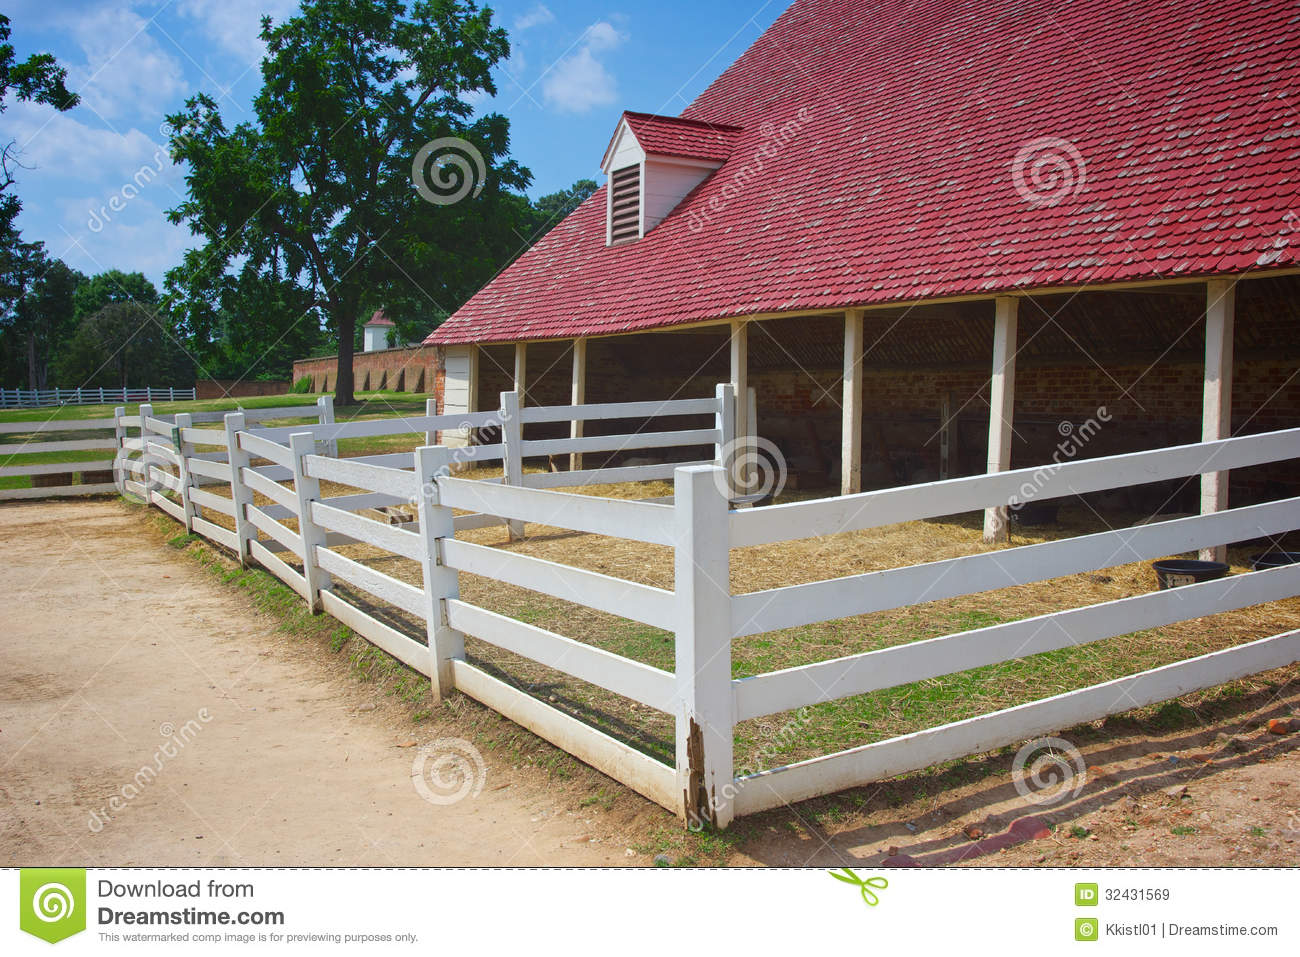 Mount vernon barns royalty free stock images image 32431569 for George washington plantation